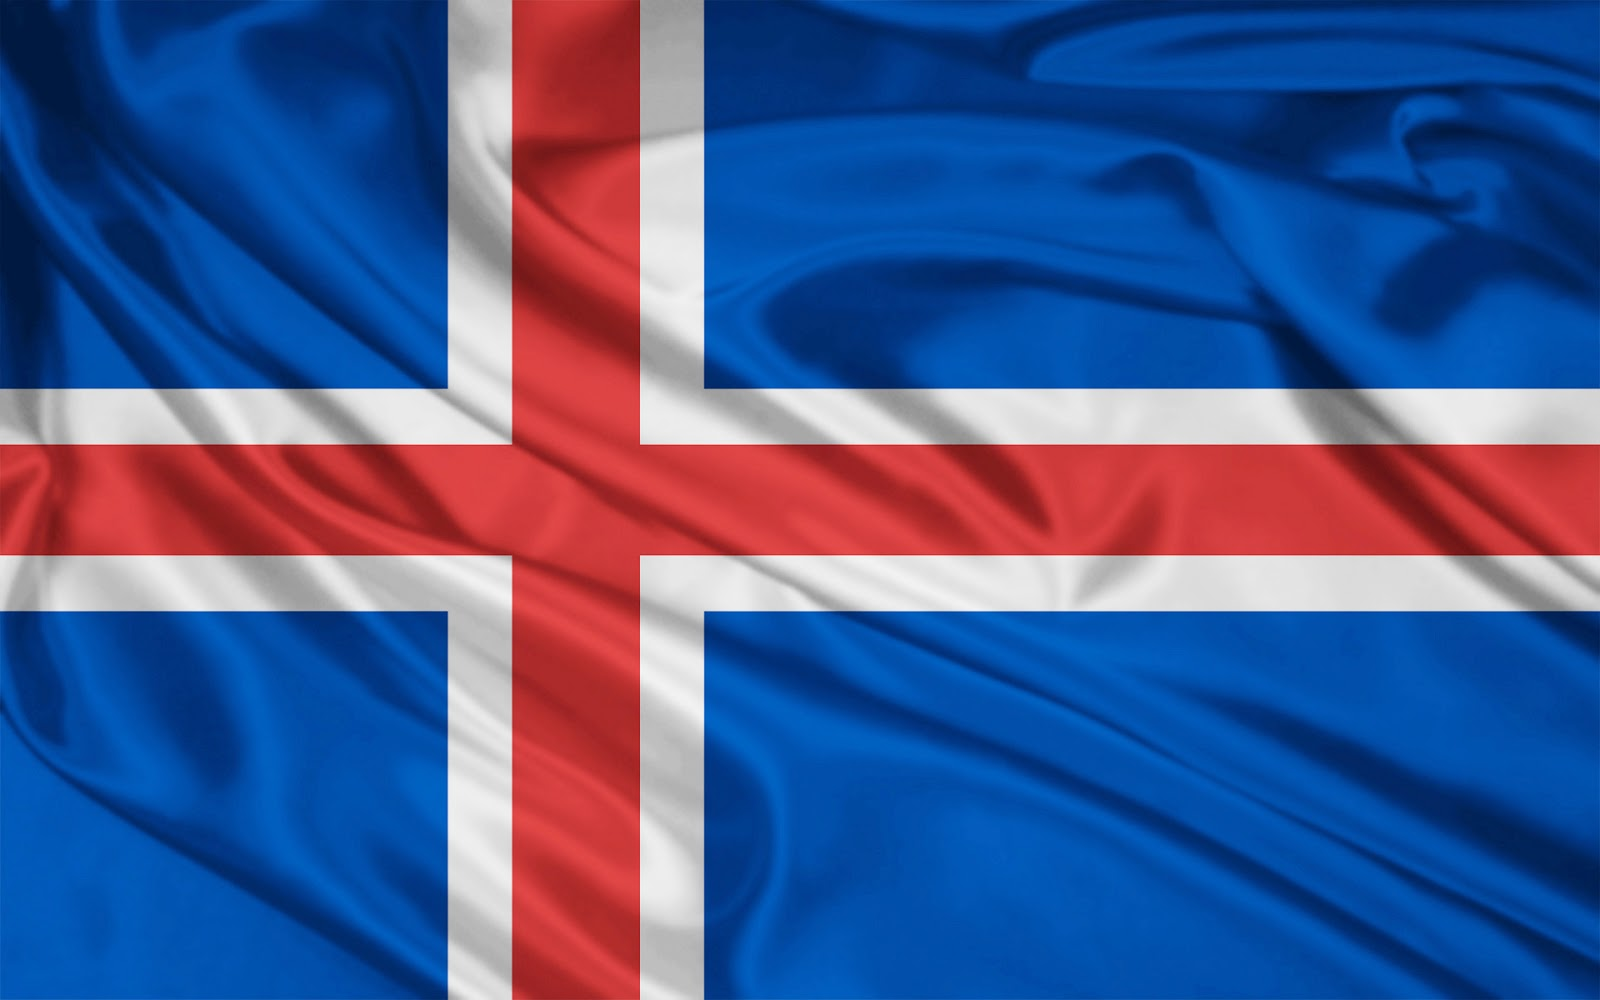 Iceland flag pictures for The flag is